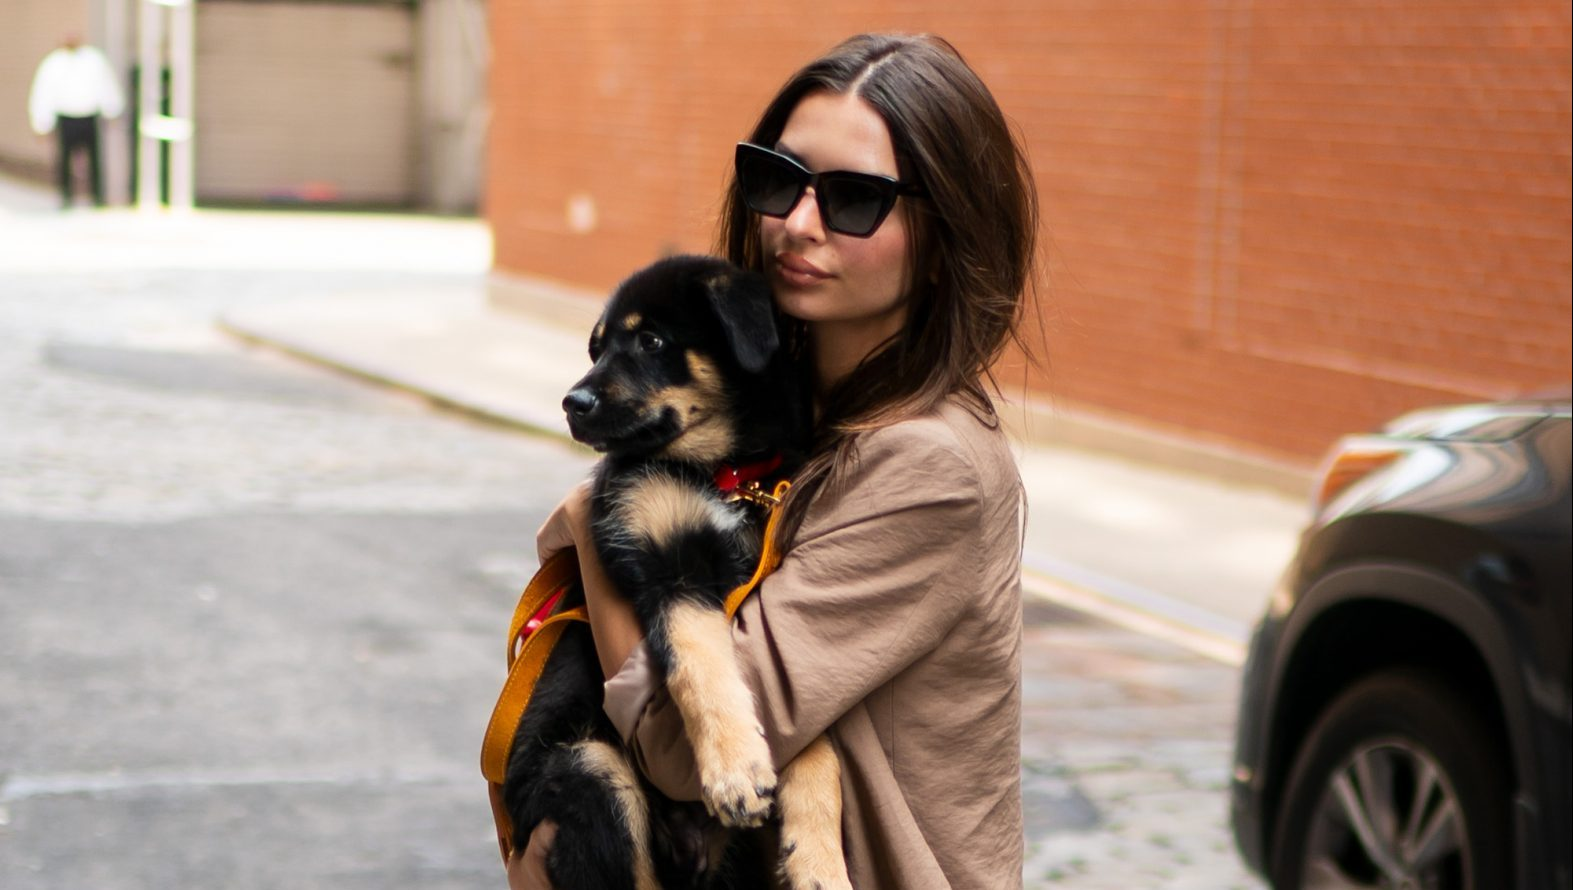 Woof 'n Wait! Emily Ratajkowski Shows Off Her Sexy Legs While Waiting for an Uber With Her Puppy Colombo